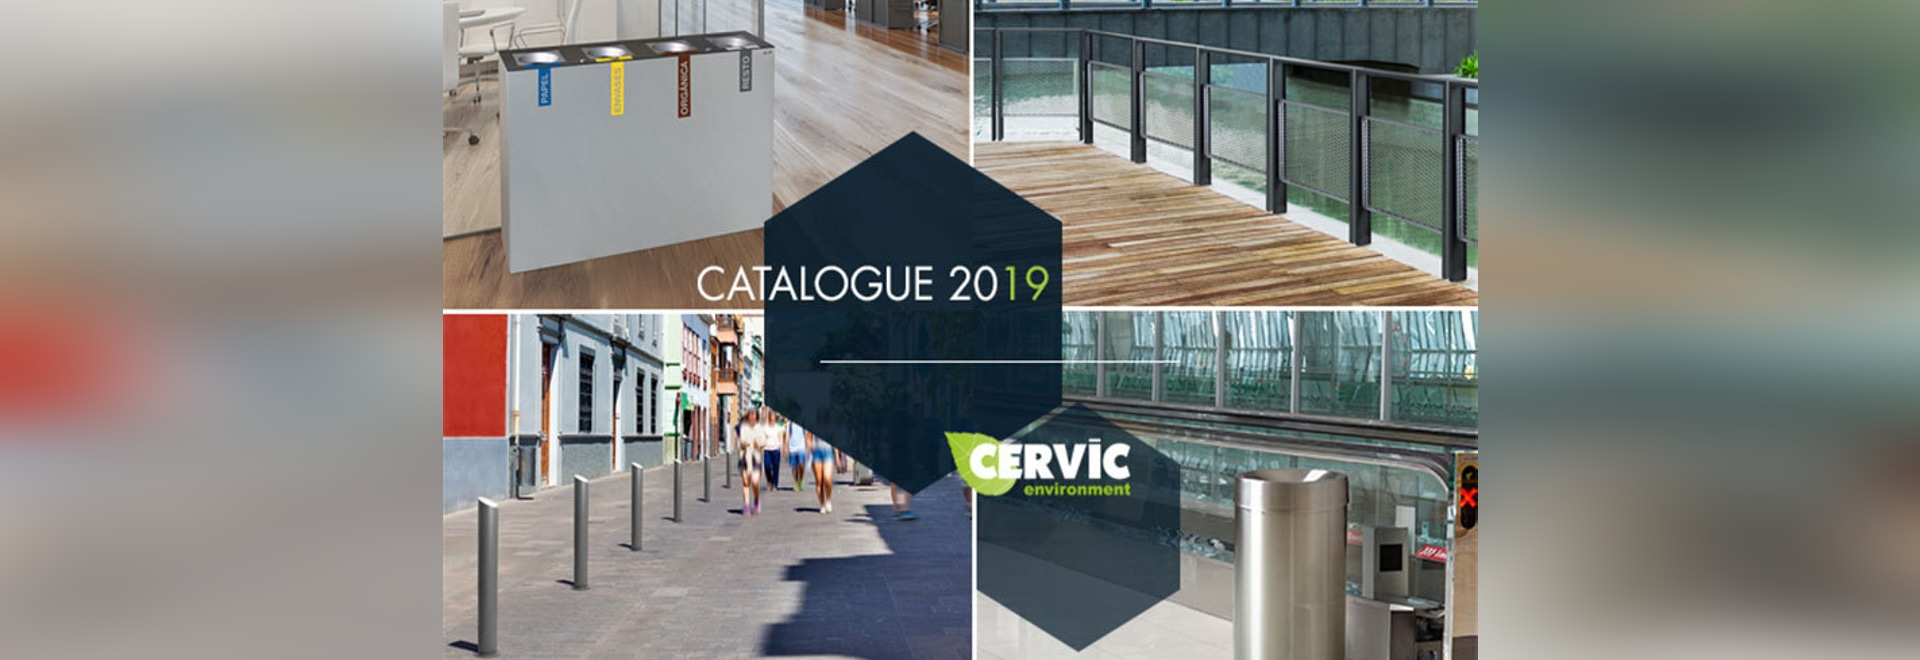 Cervic Environment launches the Catalogue 2019